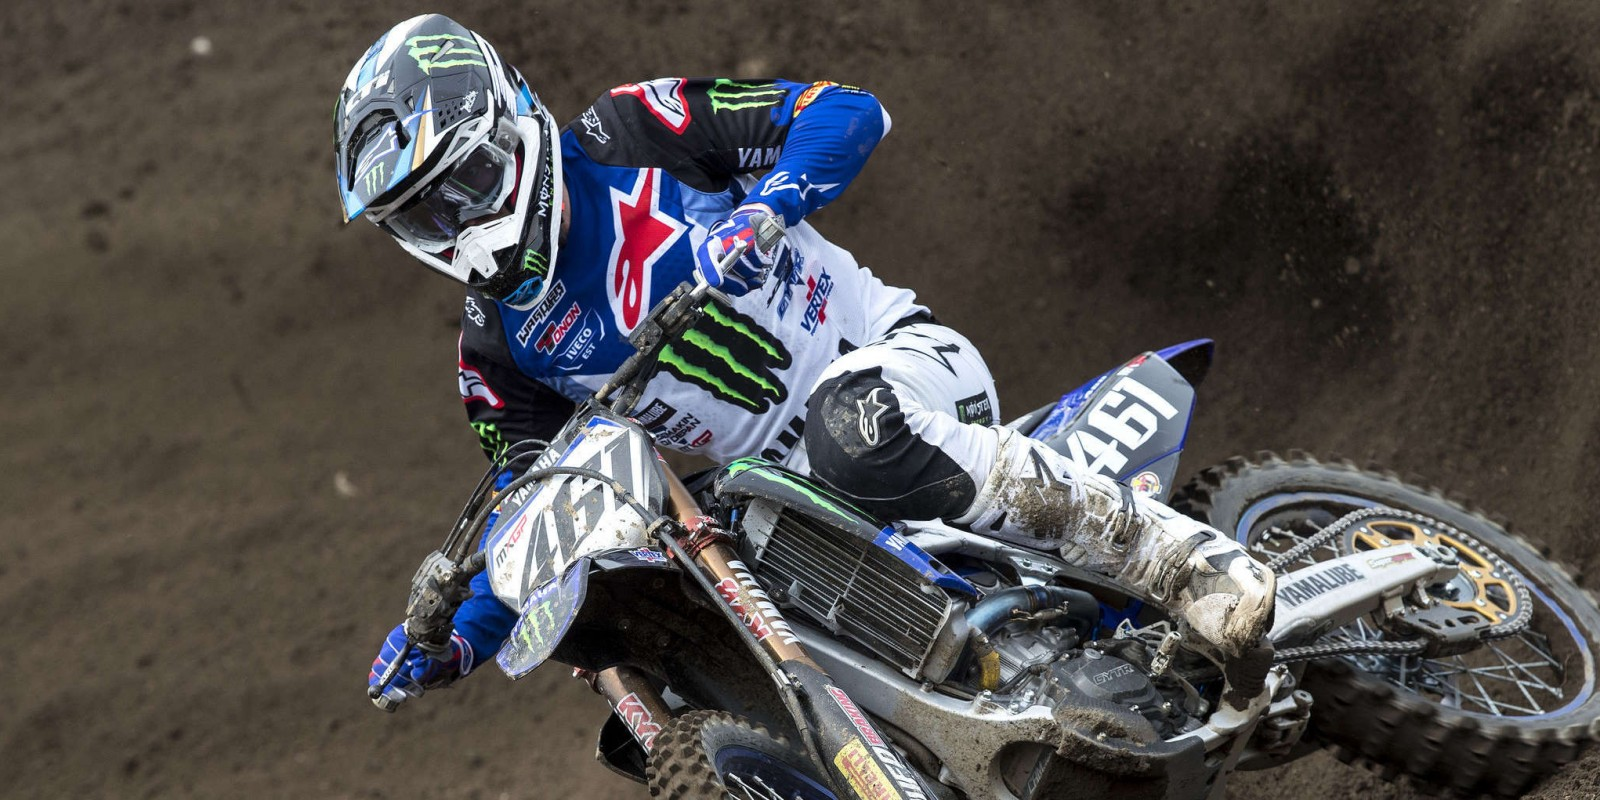 Romain Febvre at the 2019 Grand Prix of Argentina